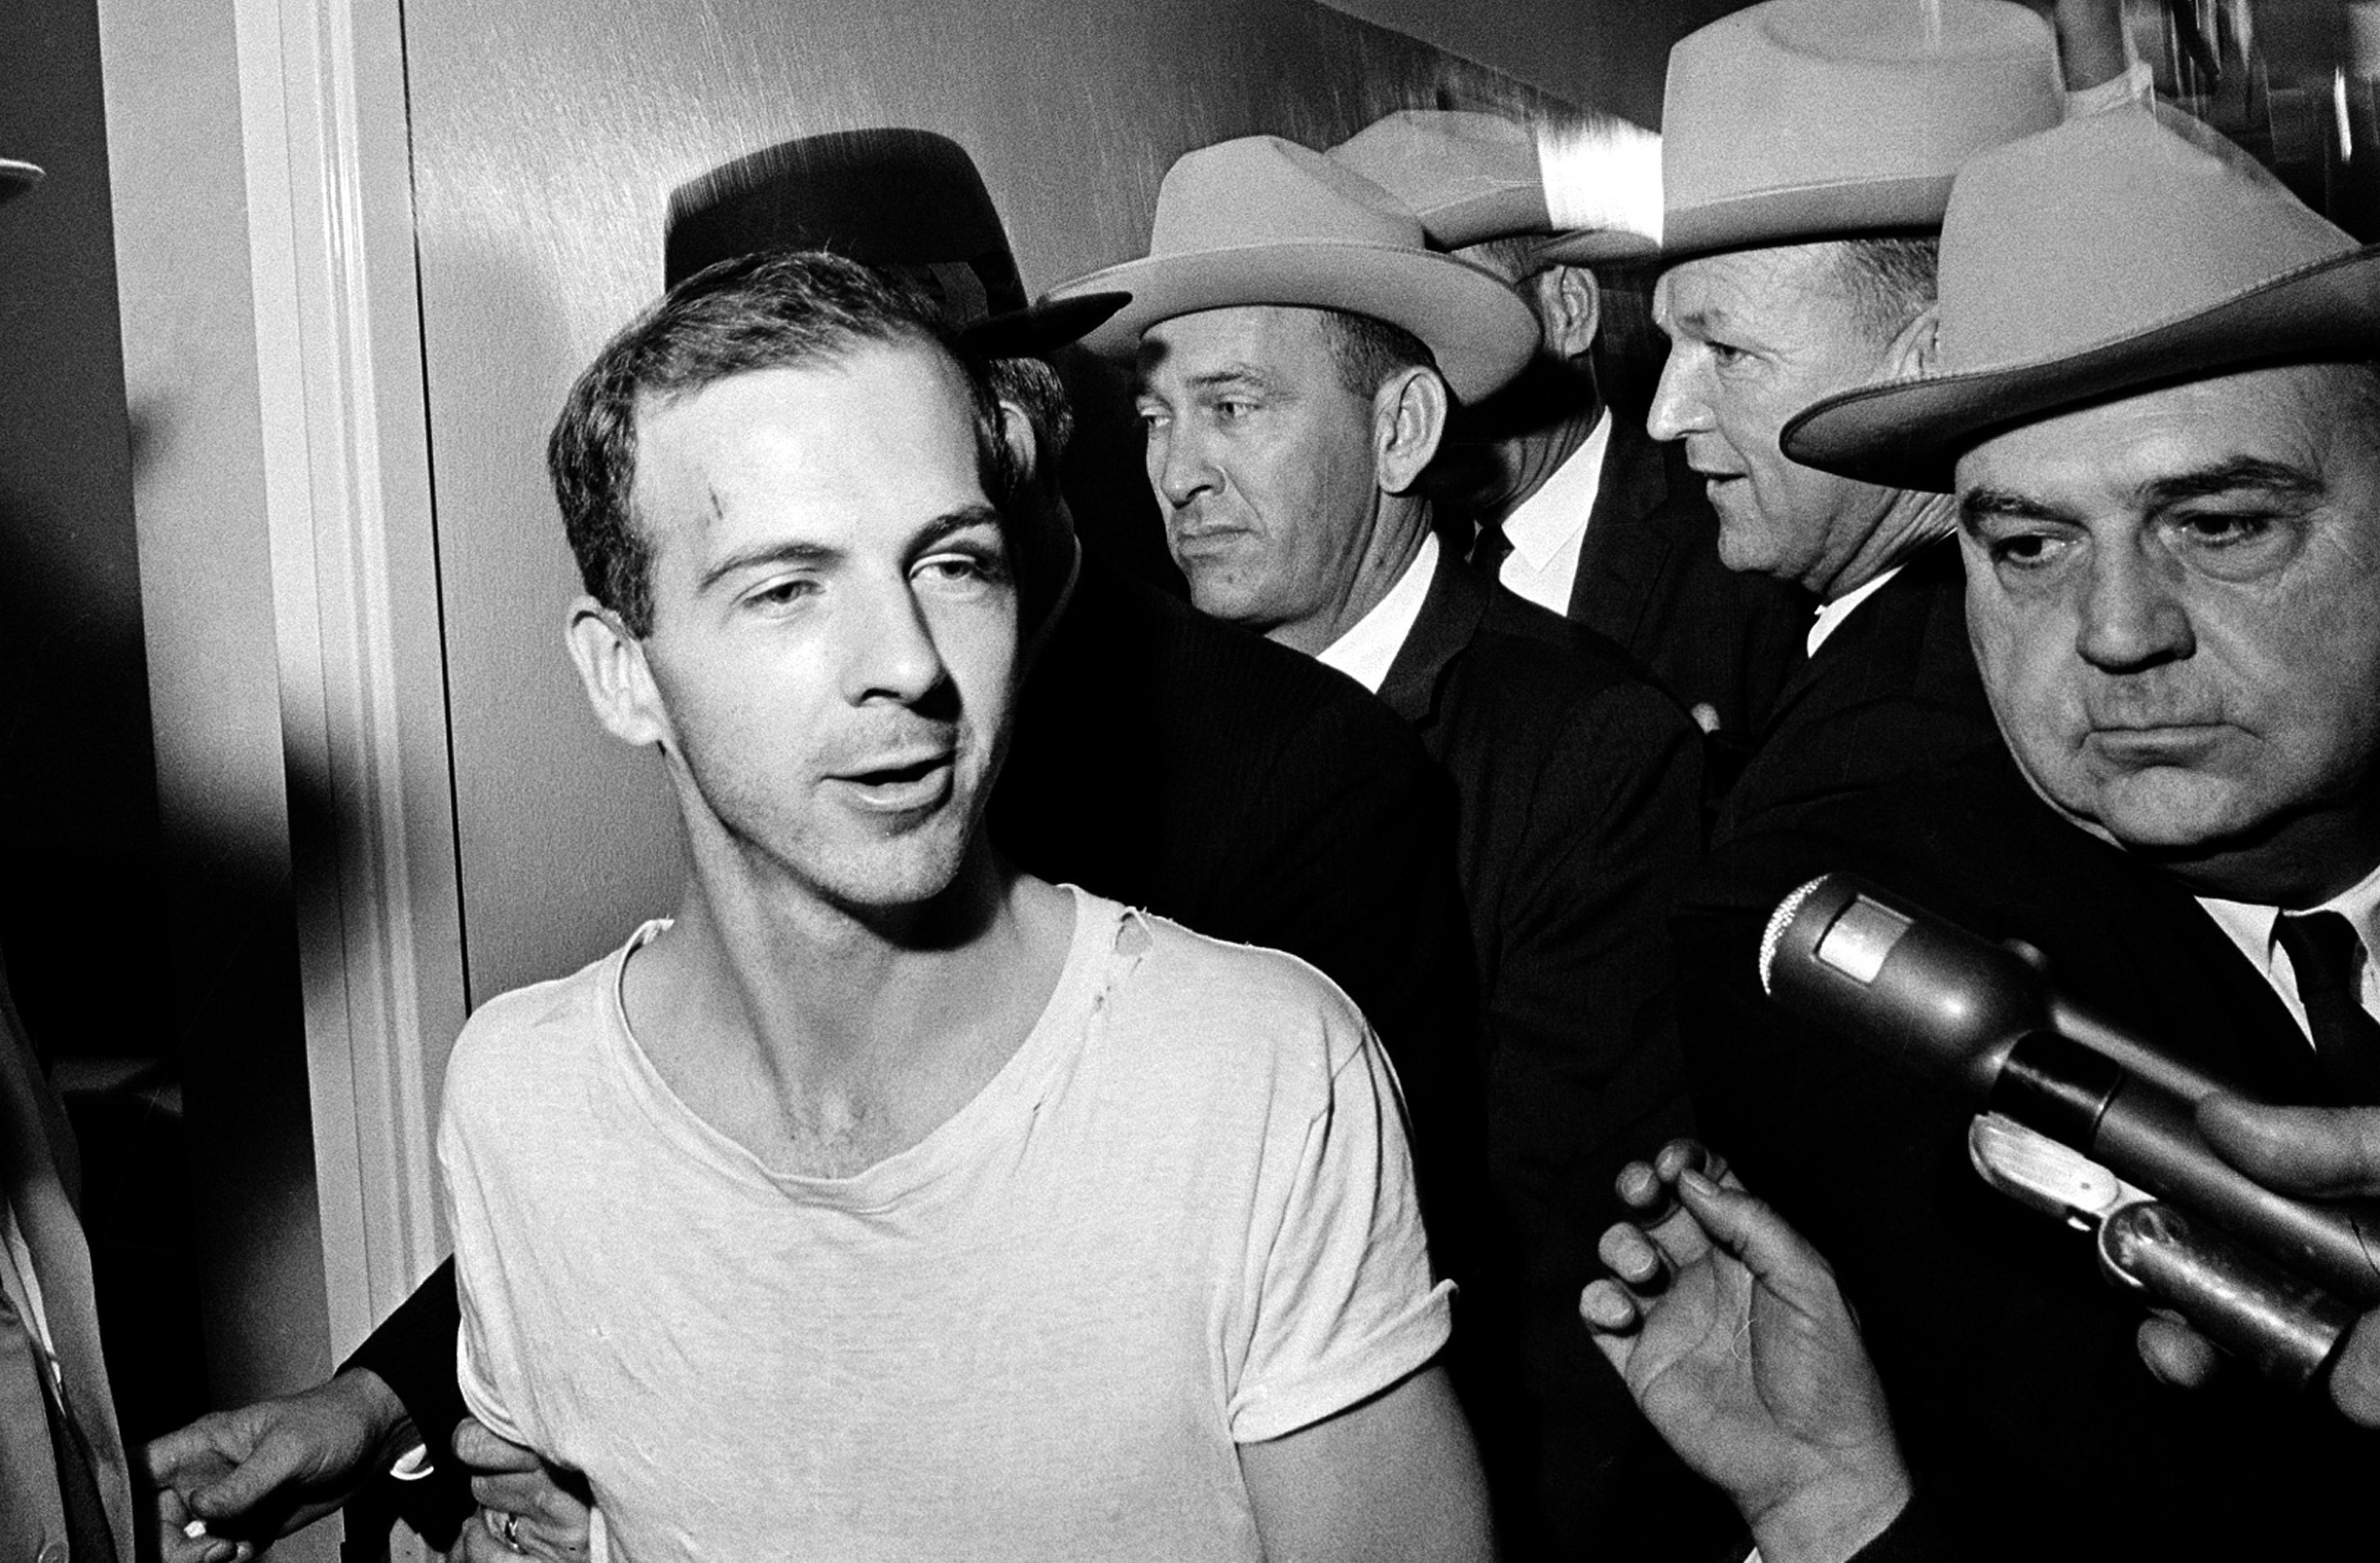 An Objective Review of the Evidence that Lee Harvey Oswald was a Patsy